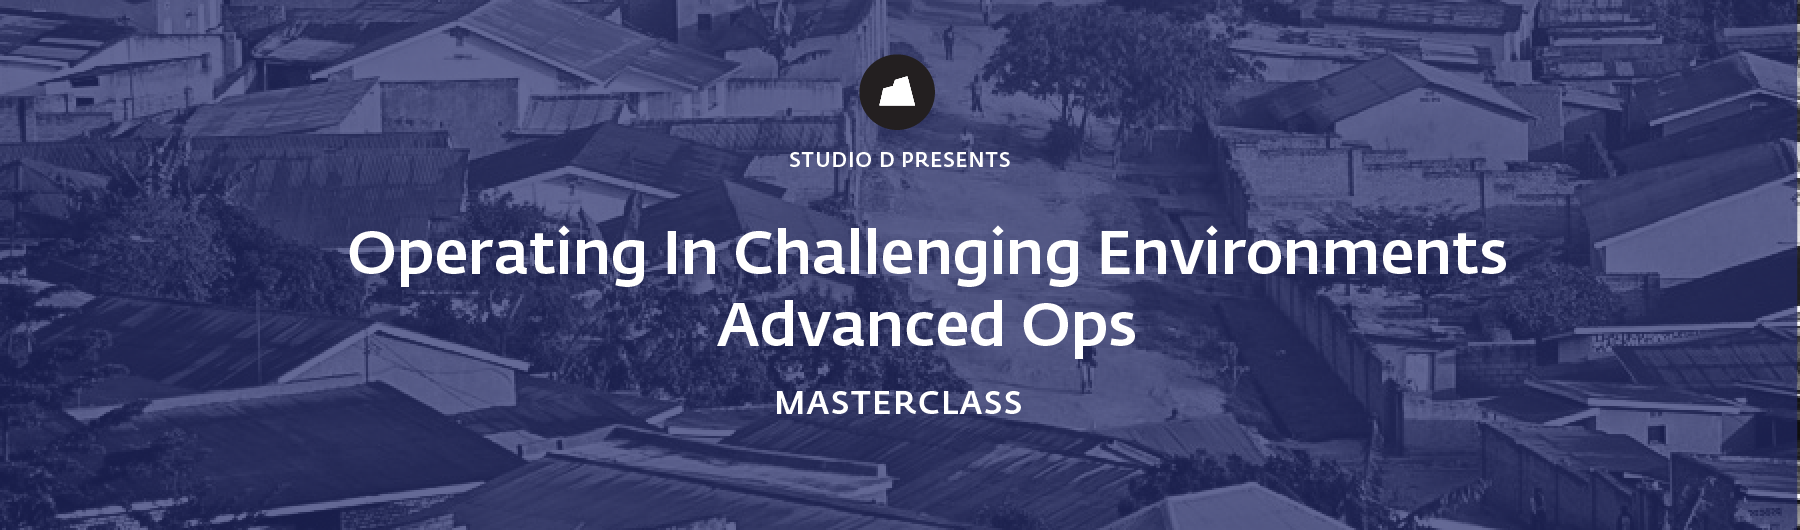 Operating in Challenging Environments, Advanced Ops Masterclass, 26 March 2020, San Francisco